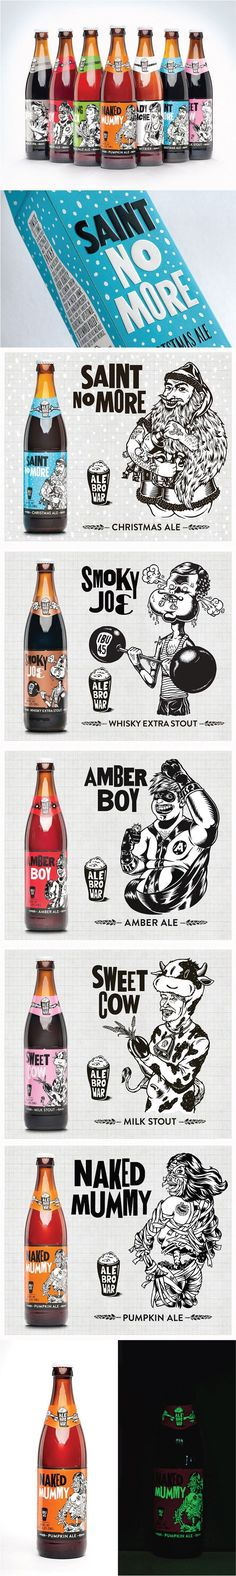 Brew by Numbers Hand written, Number and Packaging design - beer label